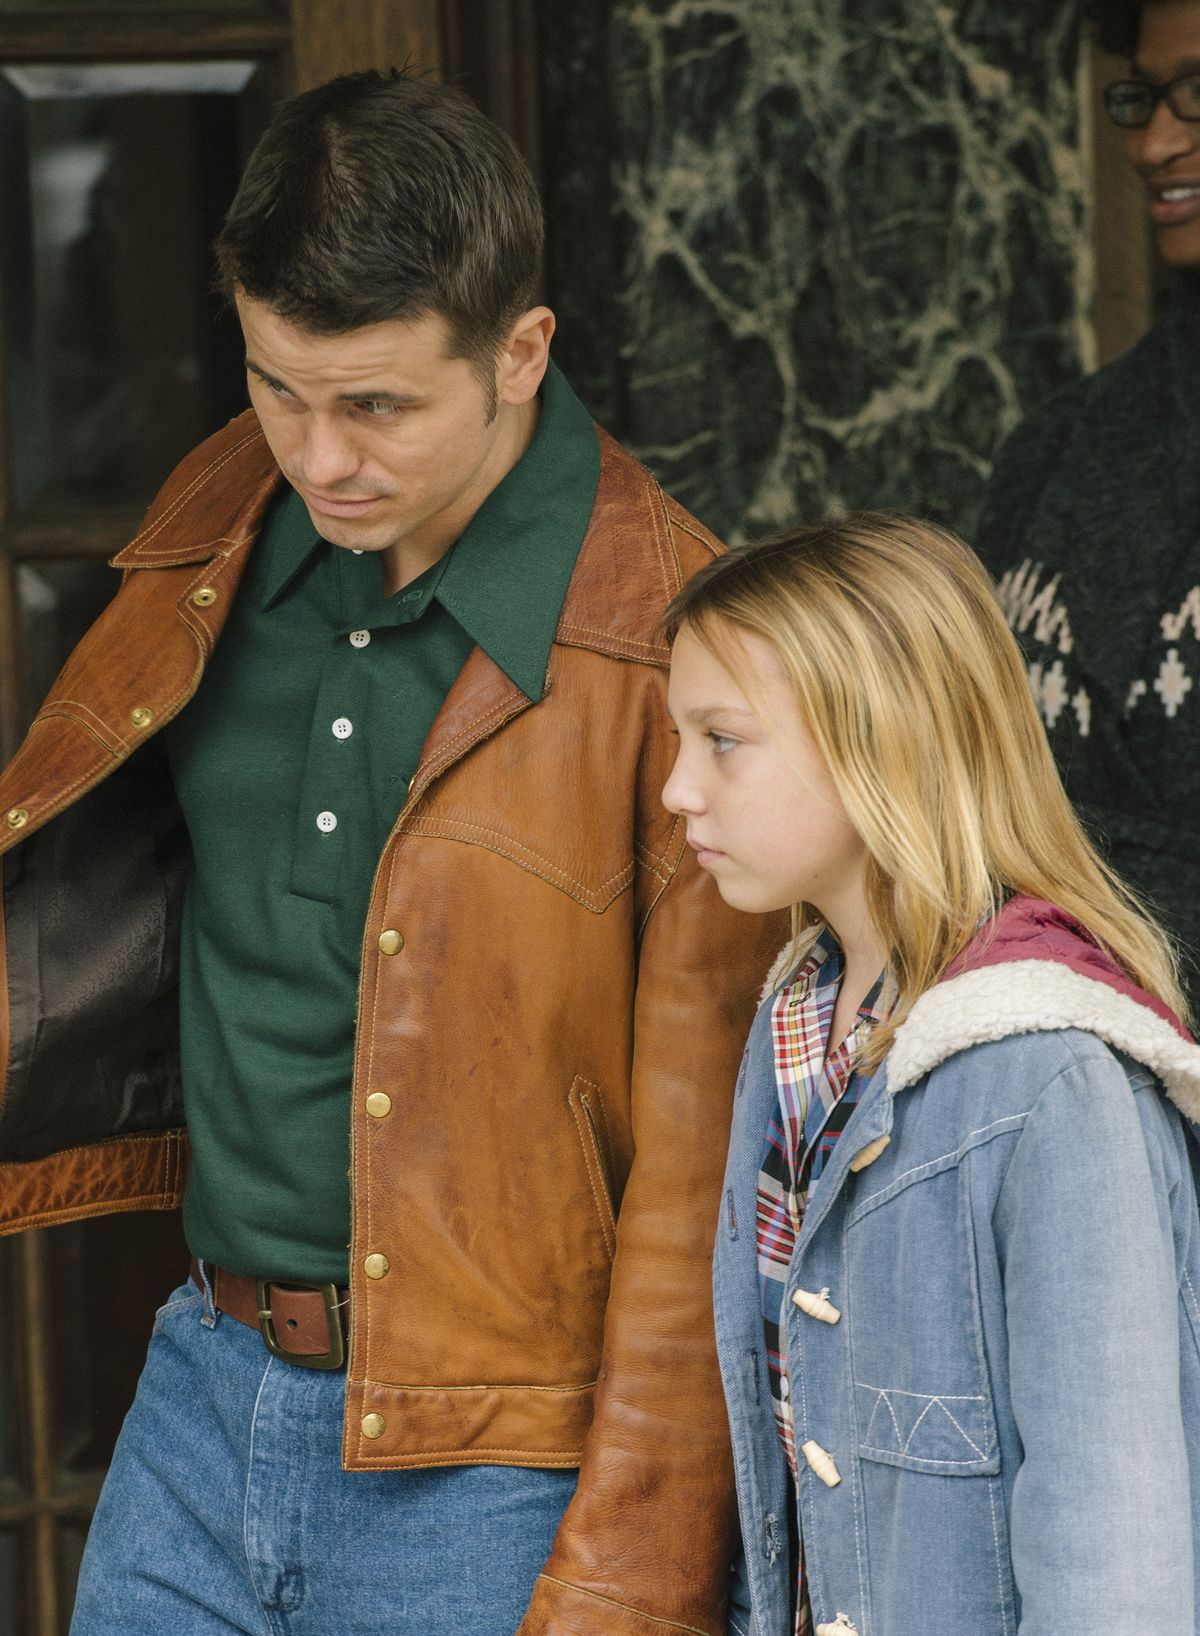 """Track coach Bill (Jason Ritter) wins the trust of 13-year-old Jenny (Isabelle Nelisse) in """"The Tale."""" 